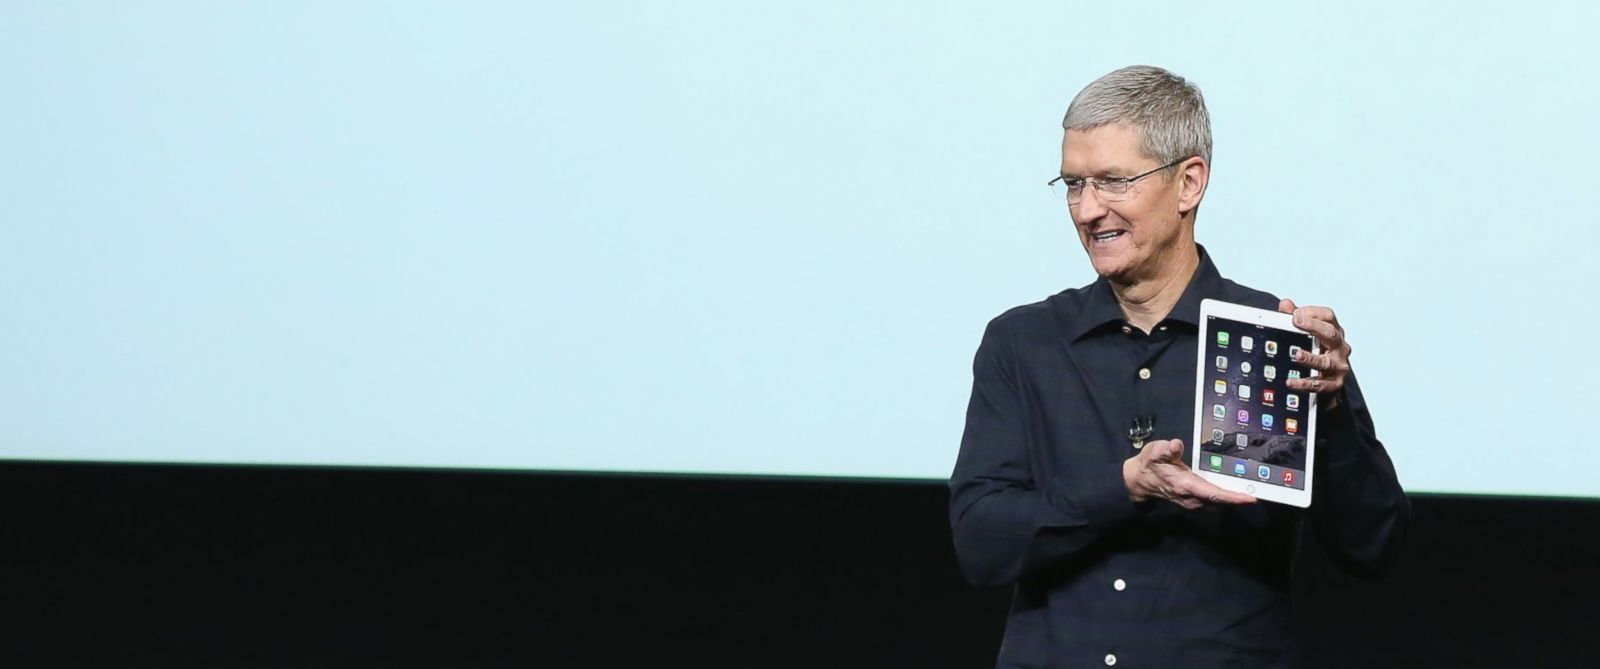 PHOTO: Apple CEO Tim Cook speaks during an event introducing the new iPad Air 2 and iPad Mini 3 at Apples headquarters Oct. 16, 2014 in Cupertino, Calif.